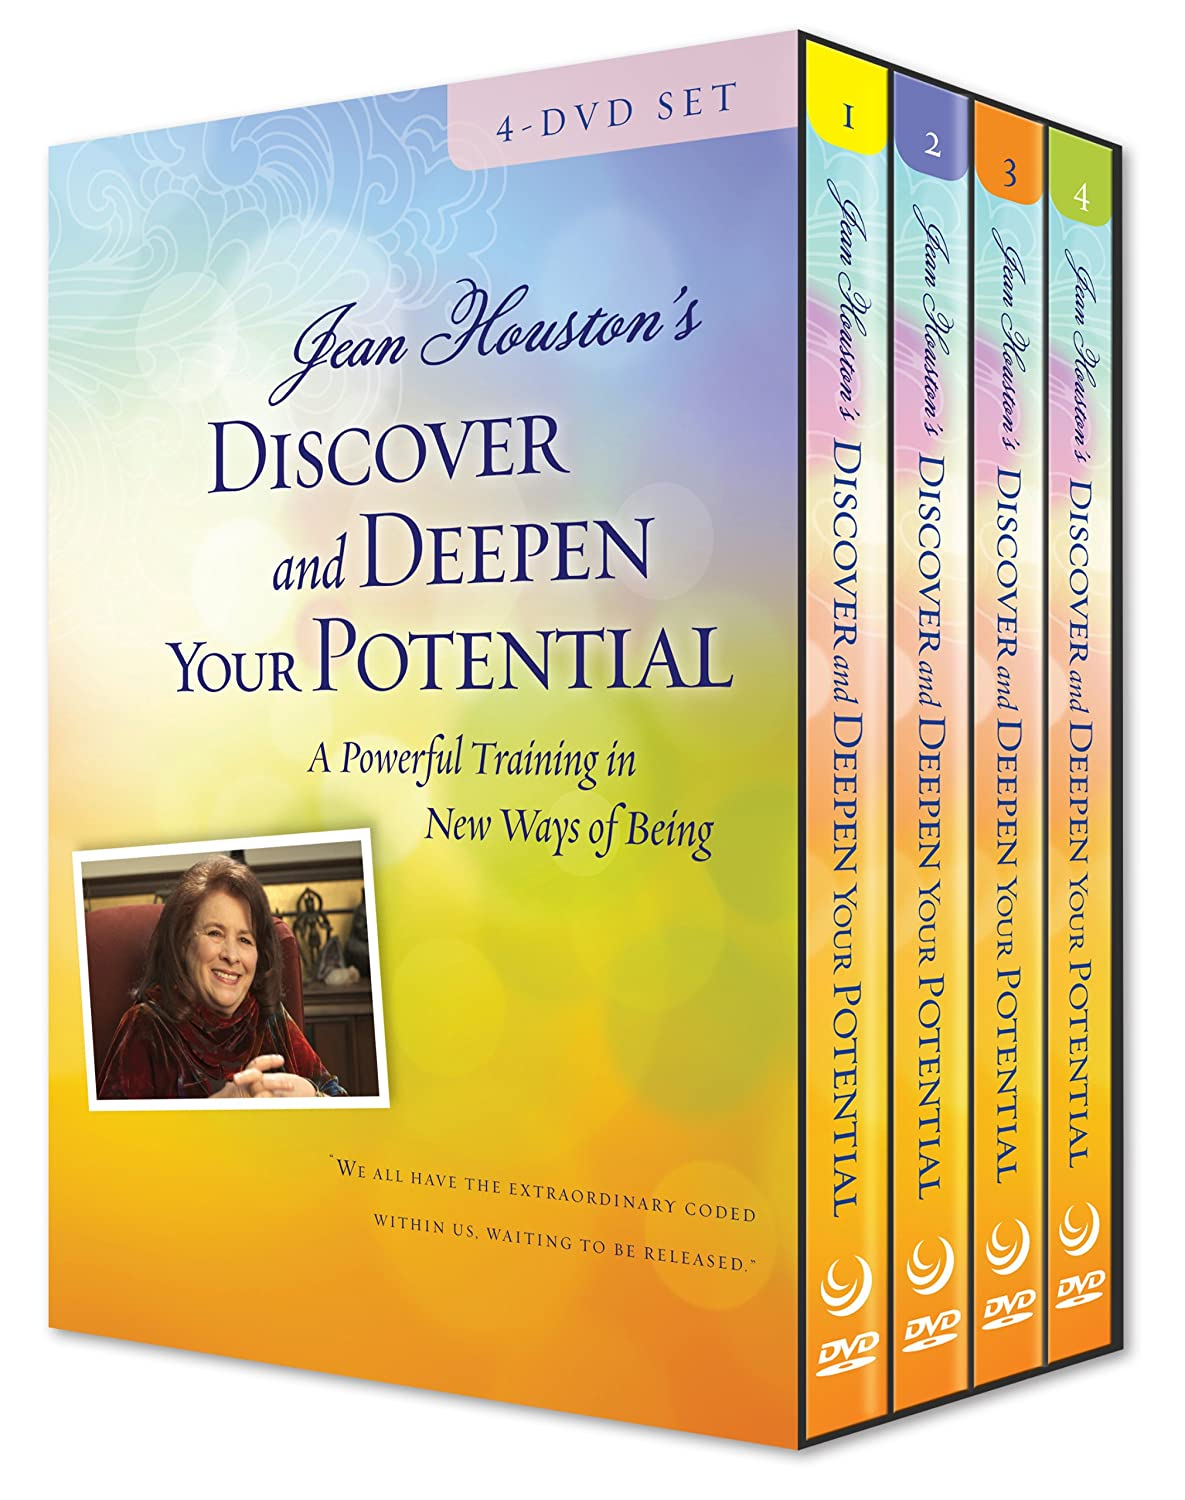 Amazon.com: Discover and Deepen Your Potential - 4 DVD Set: Jean Houston:  Movies & TV